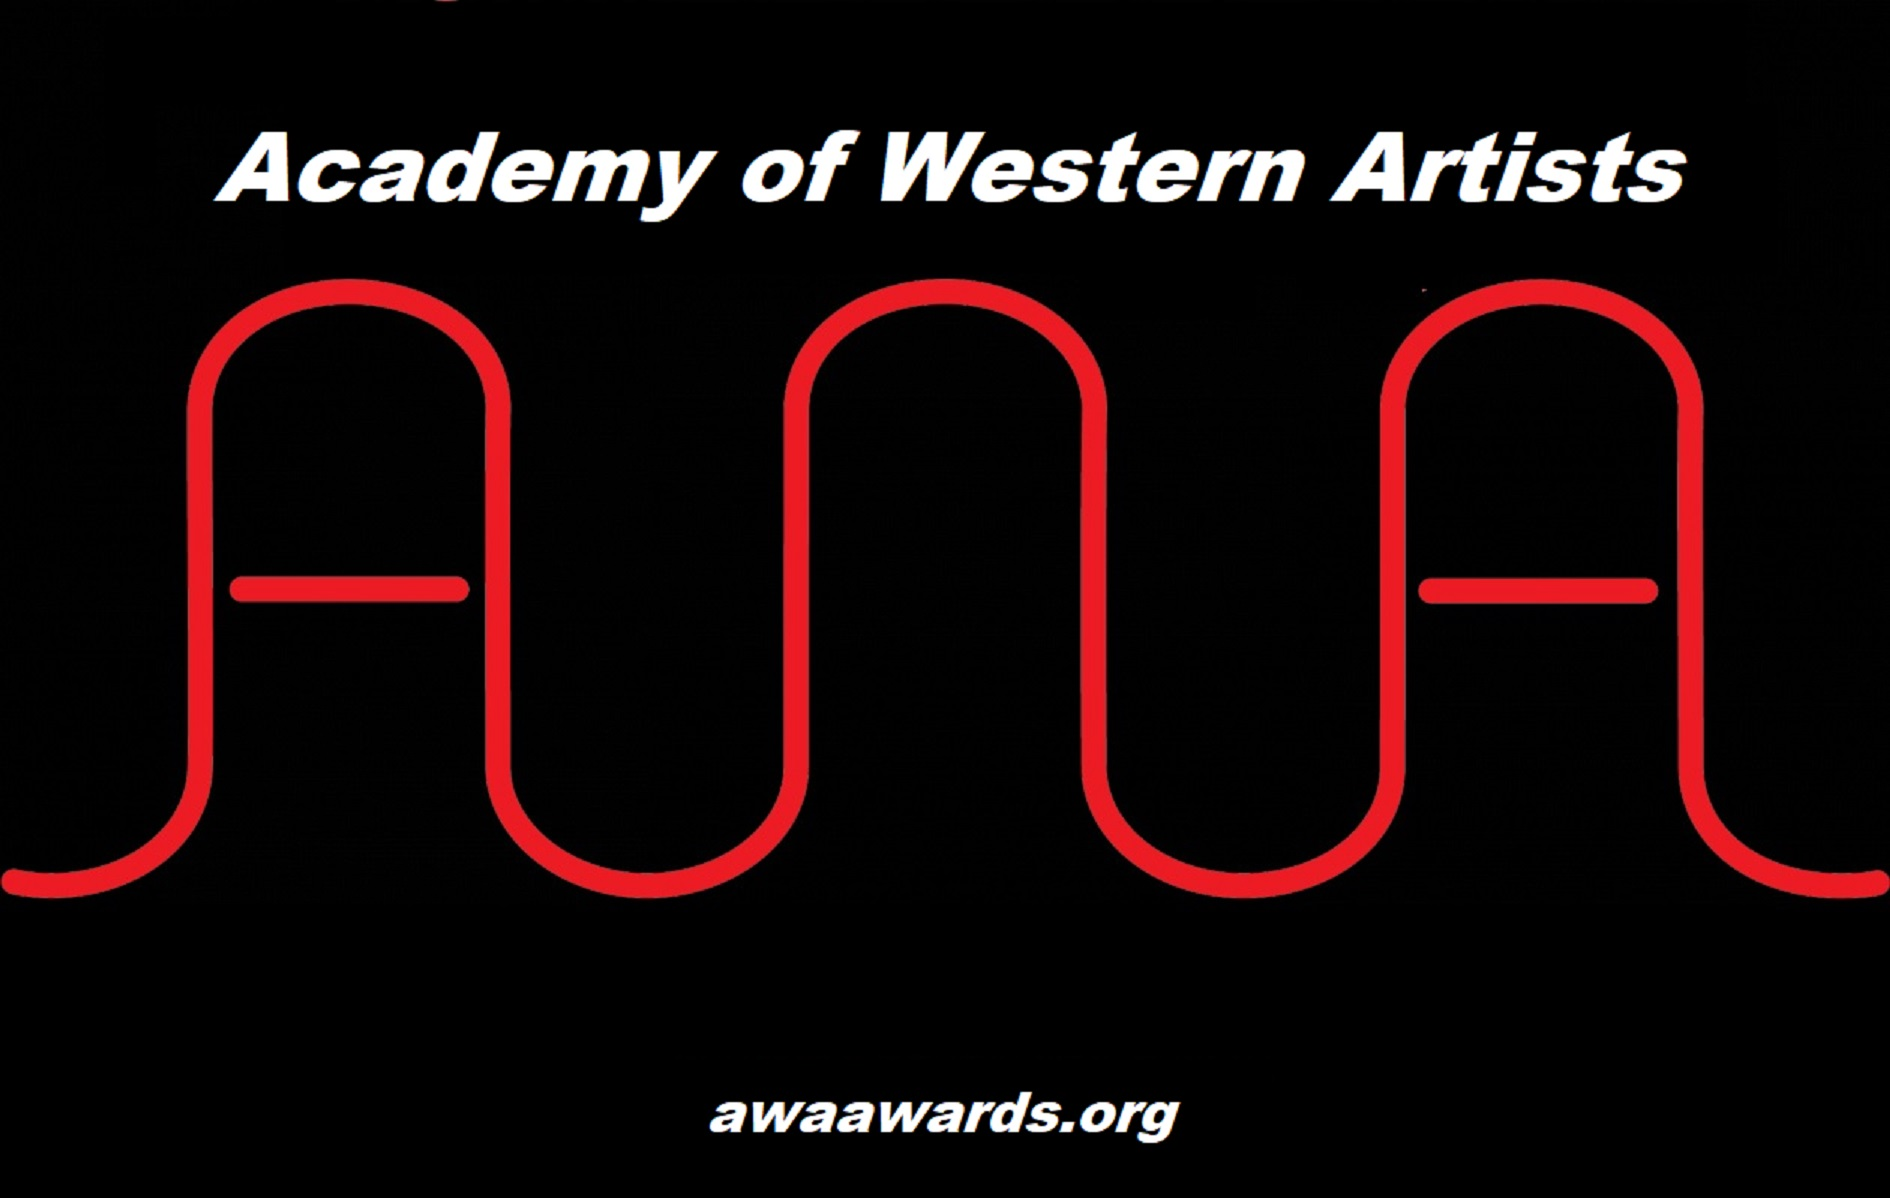 Academy of Western Artists